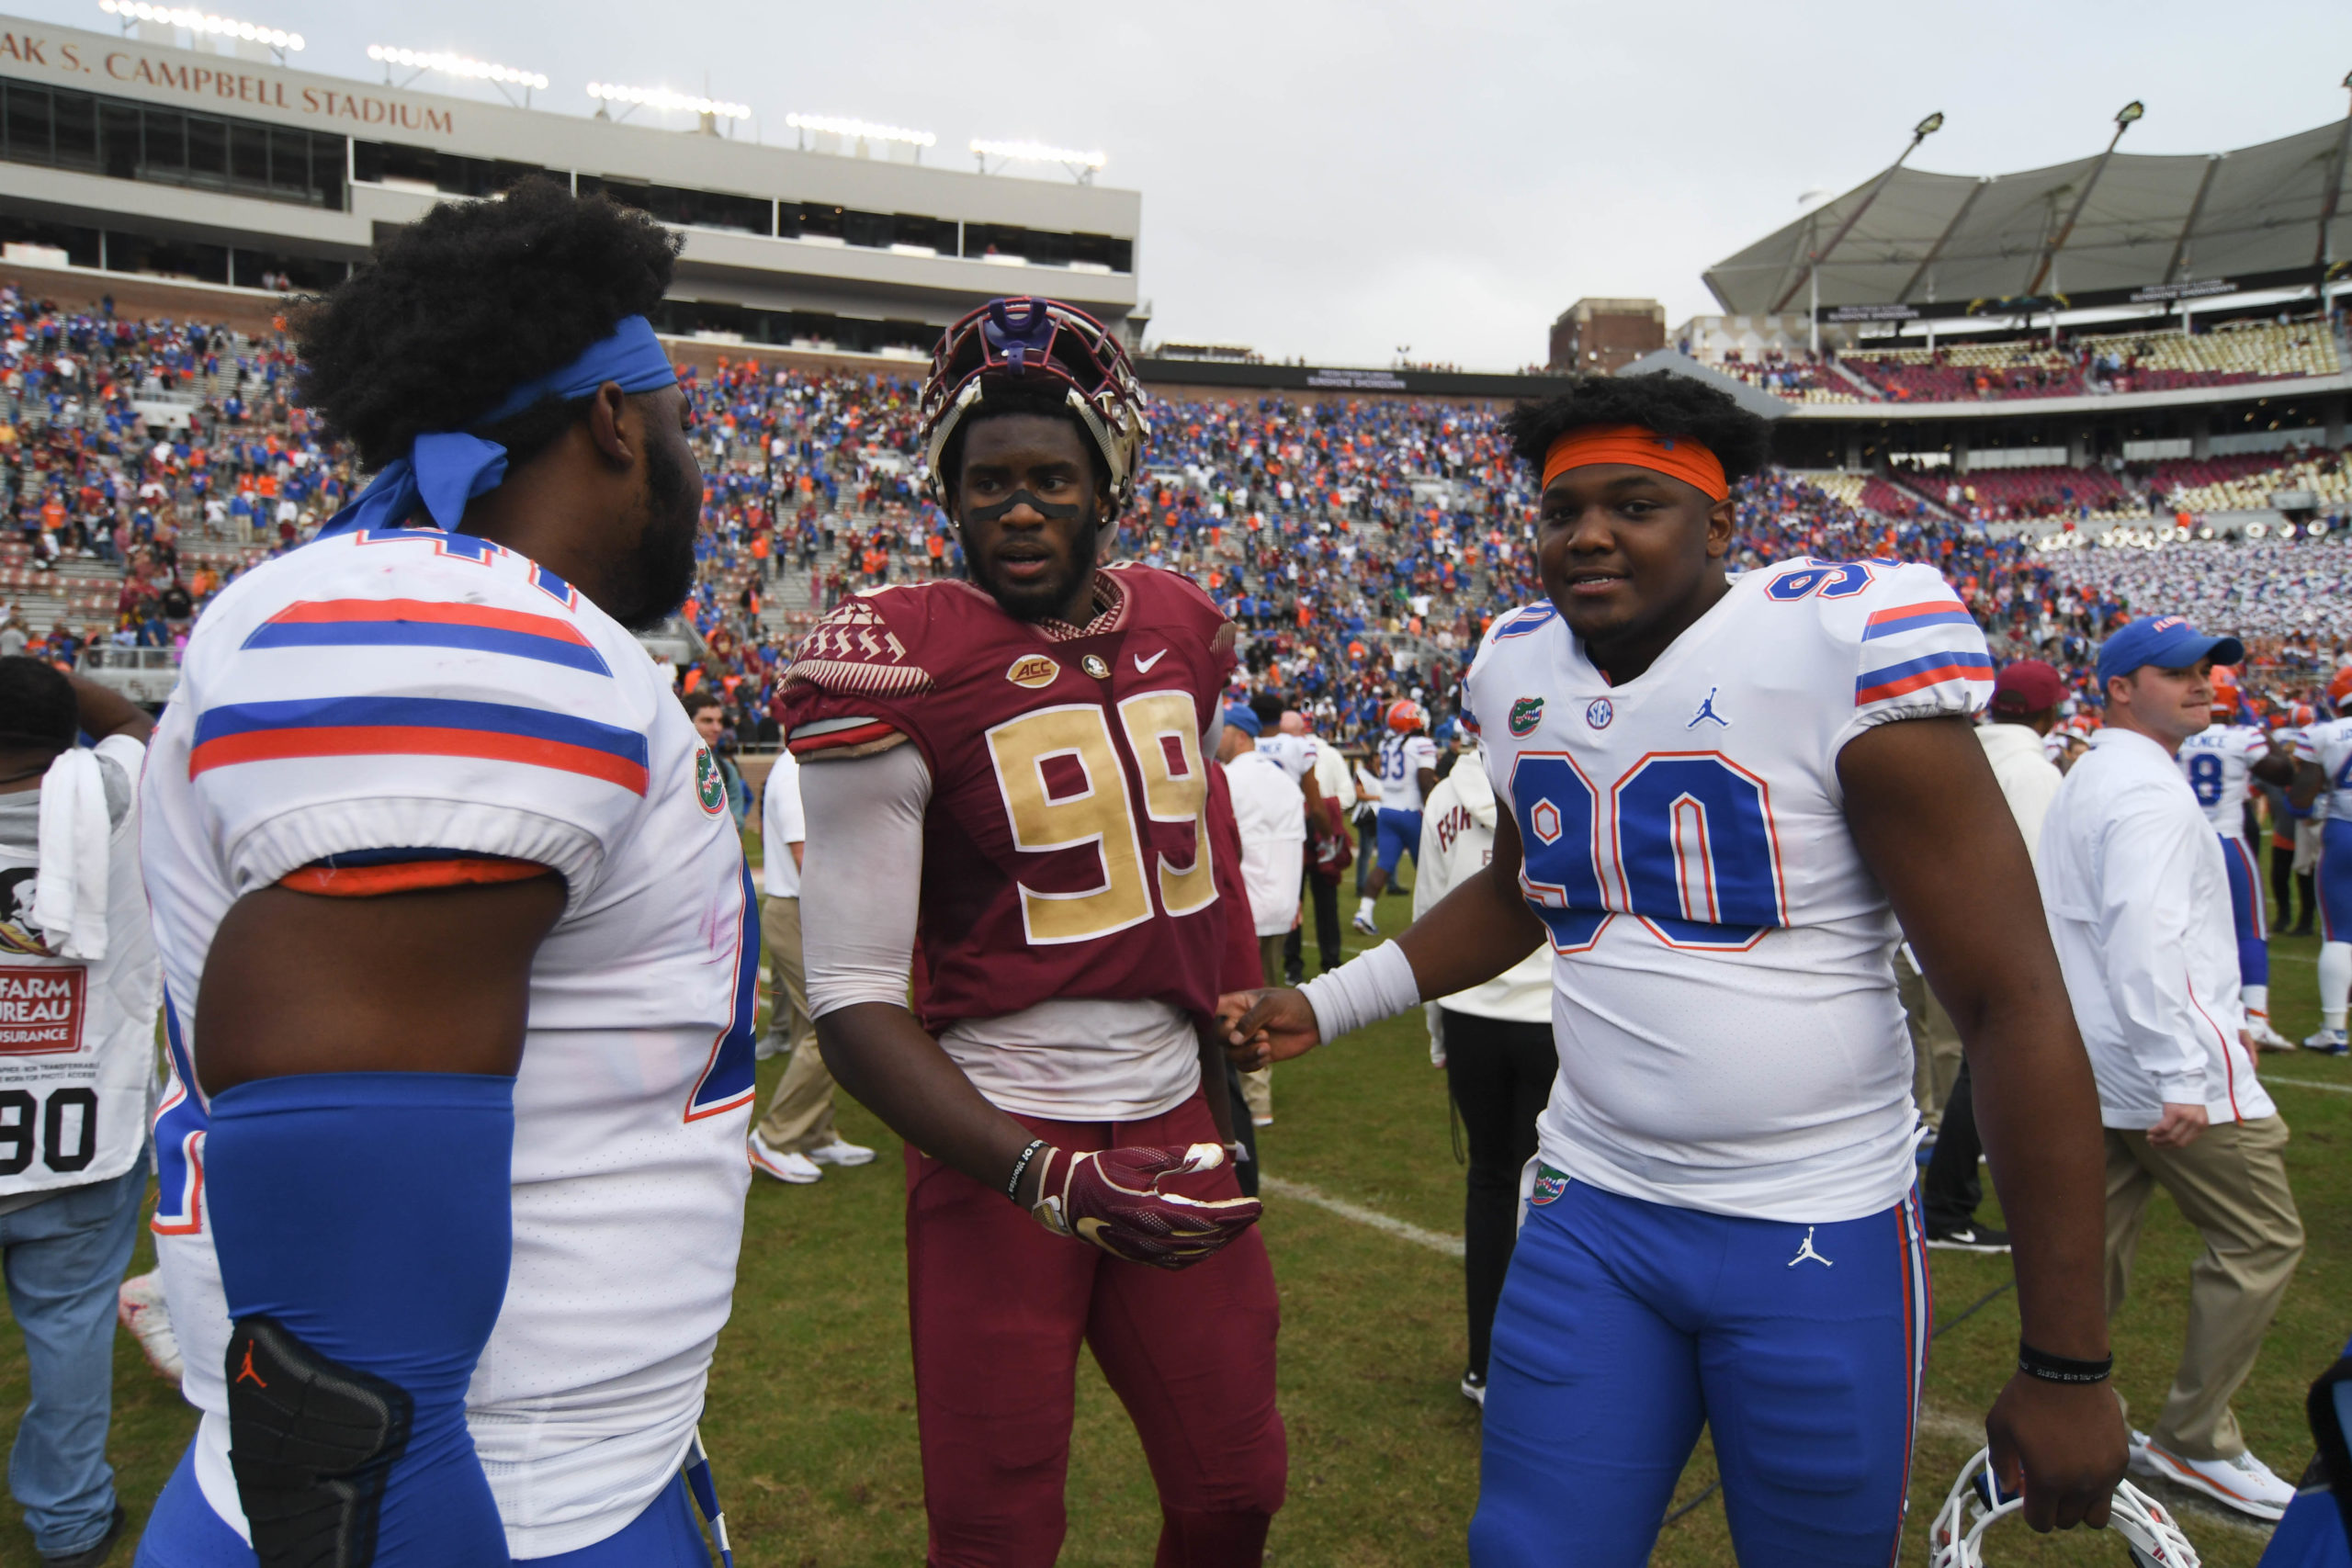 FSU vs UF football